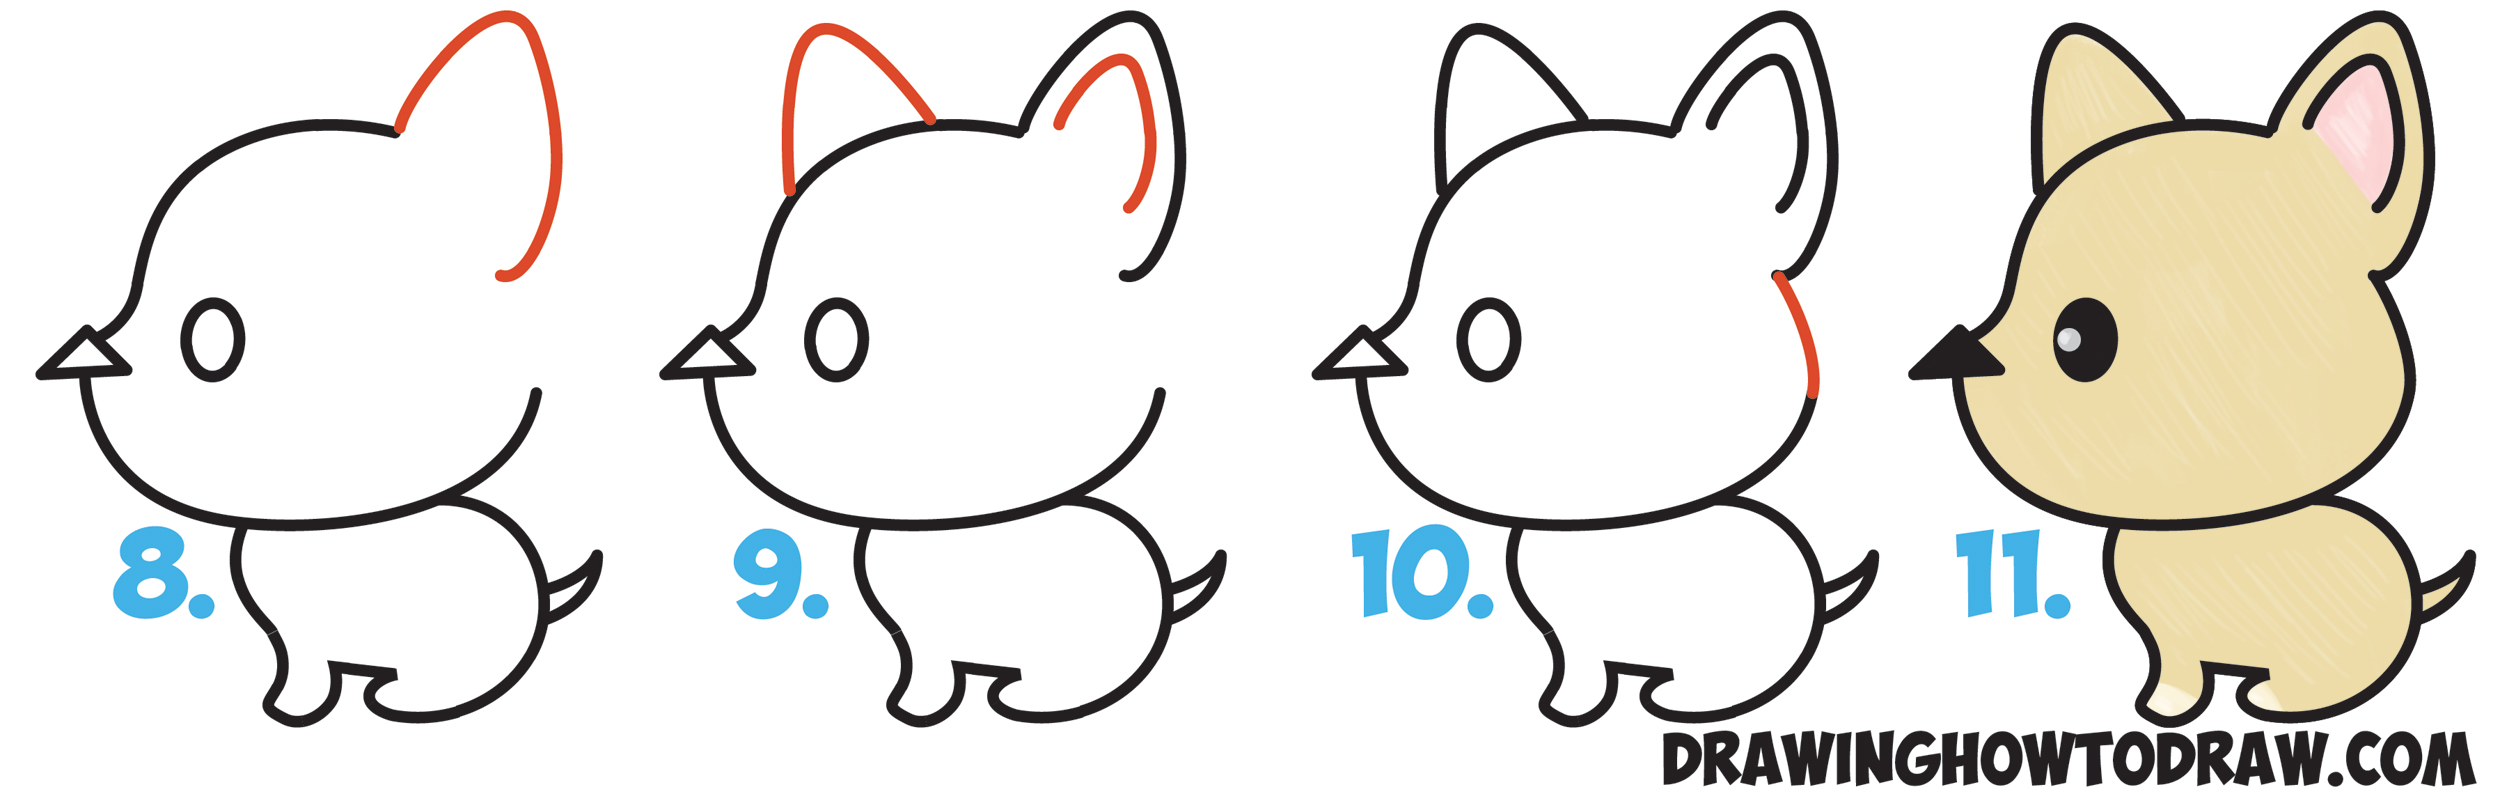 learn how to draw a cute cartoon dog kawaii style from an arrow simple